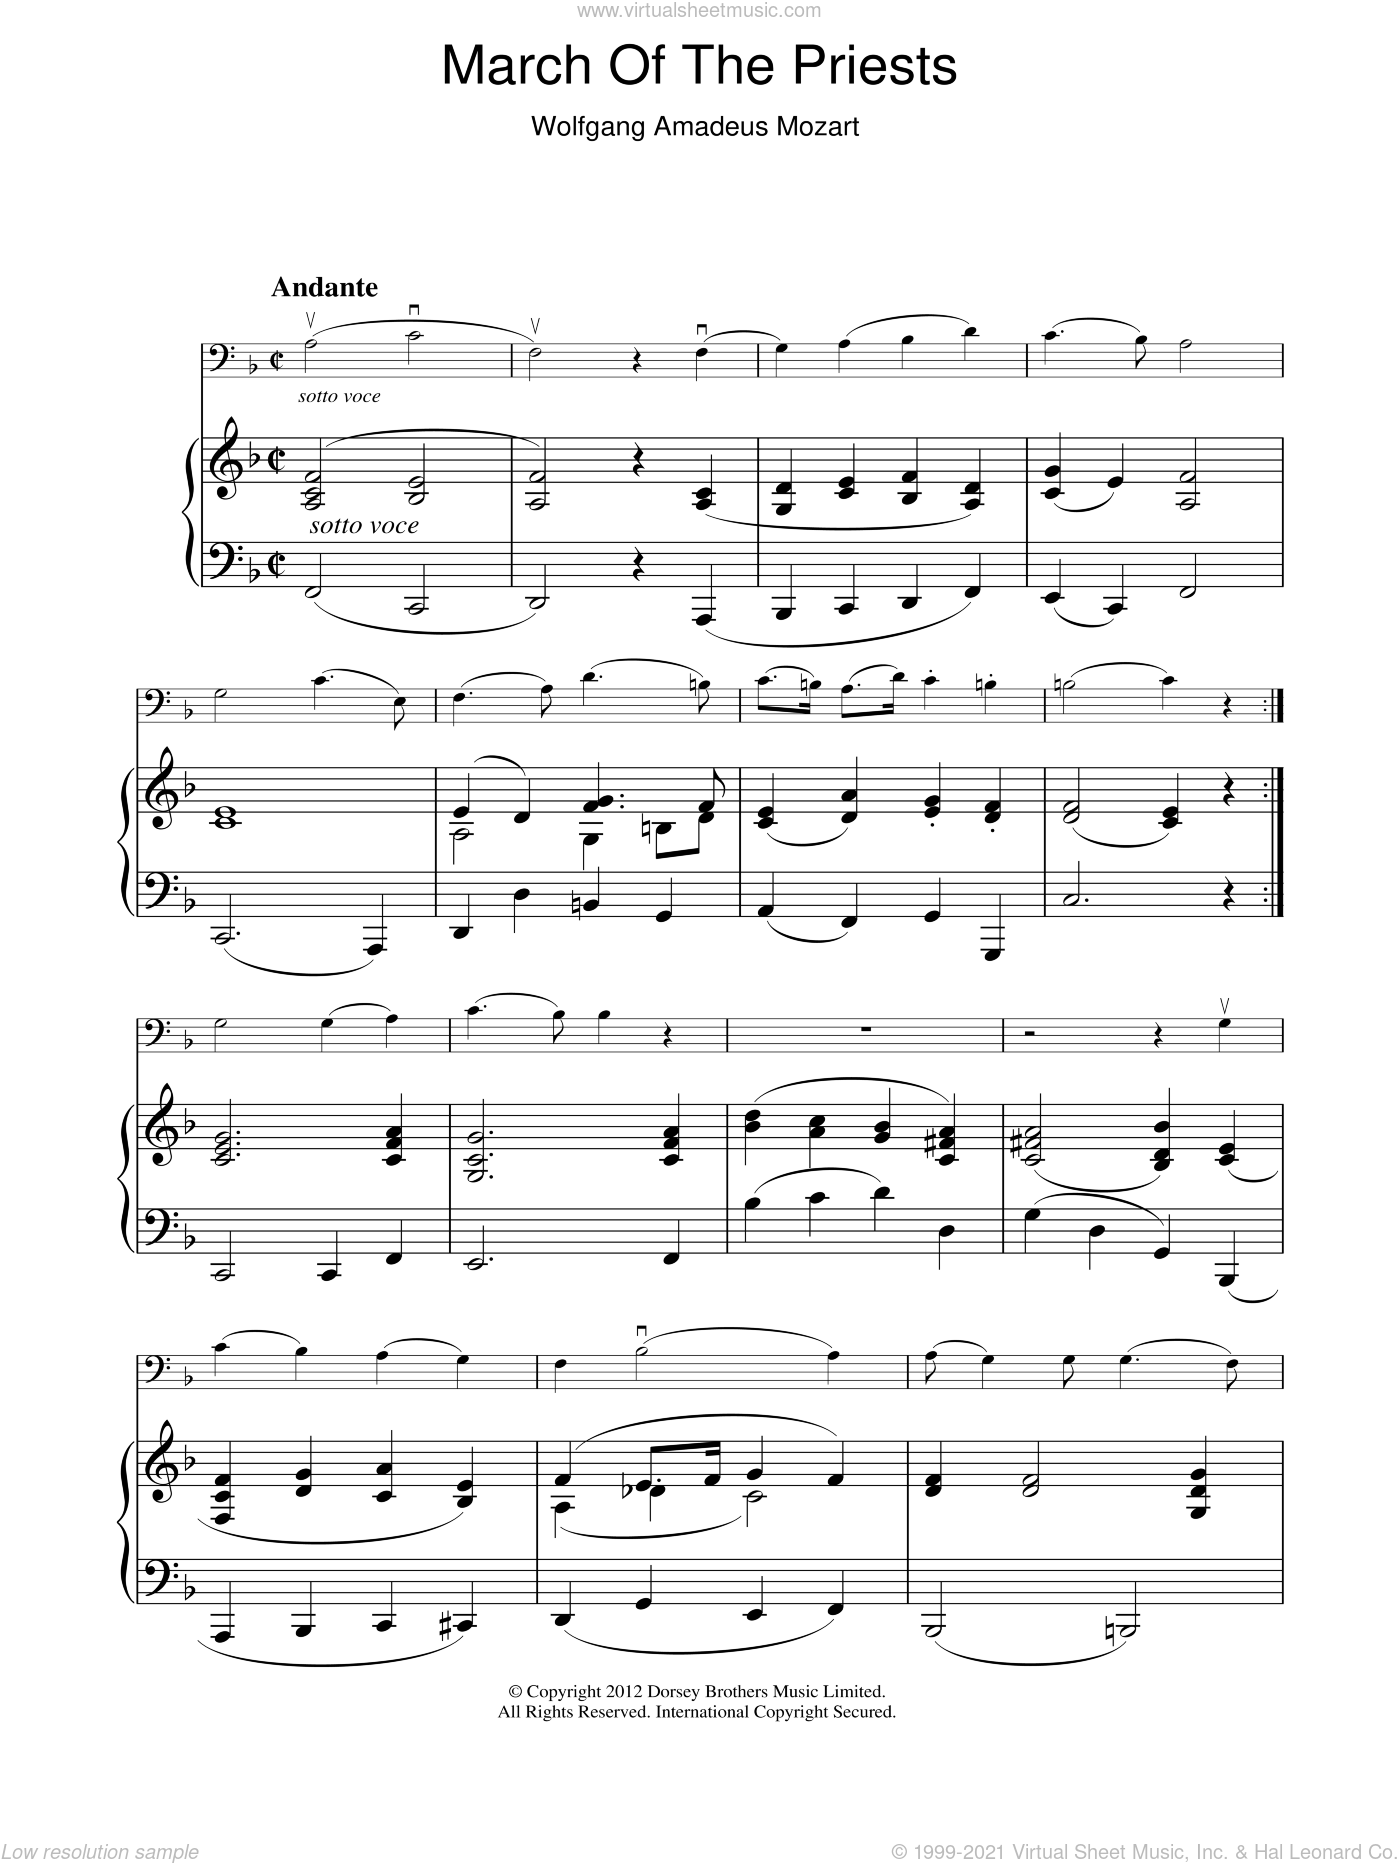 March Of The Priests sheet music for voice, piano or guitar by Wolfgang Amadeus Mozart. Score Image Preview.